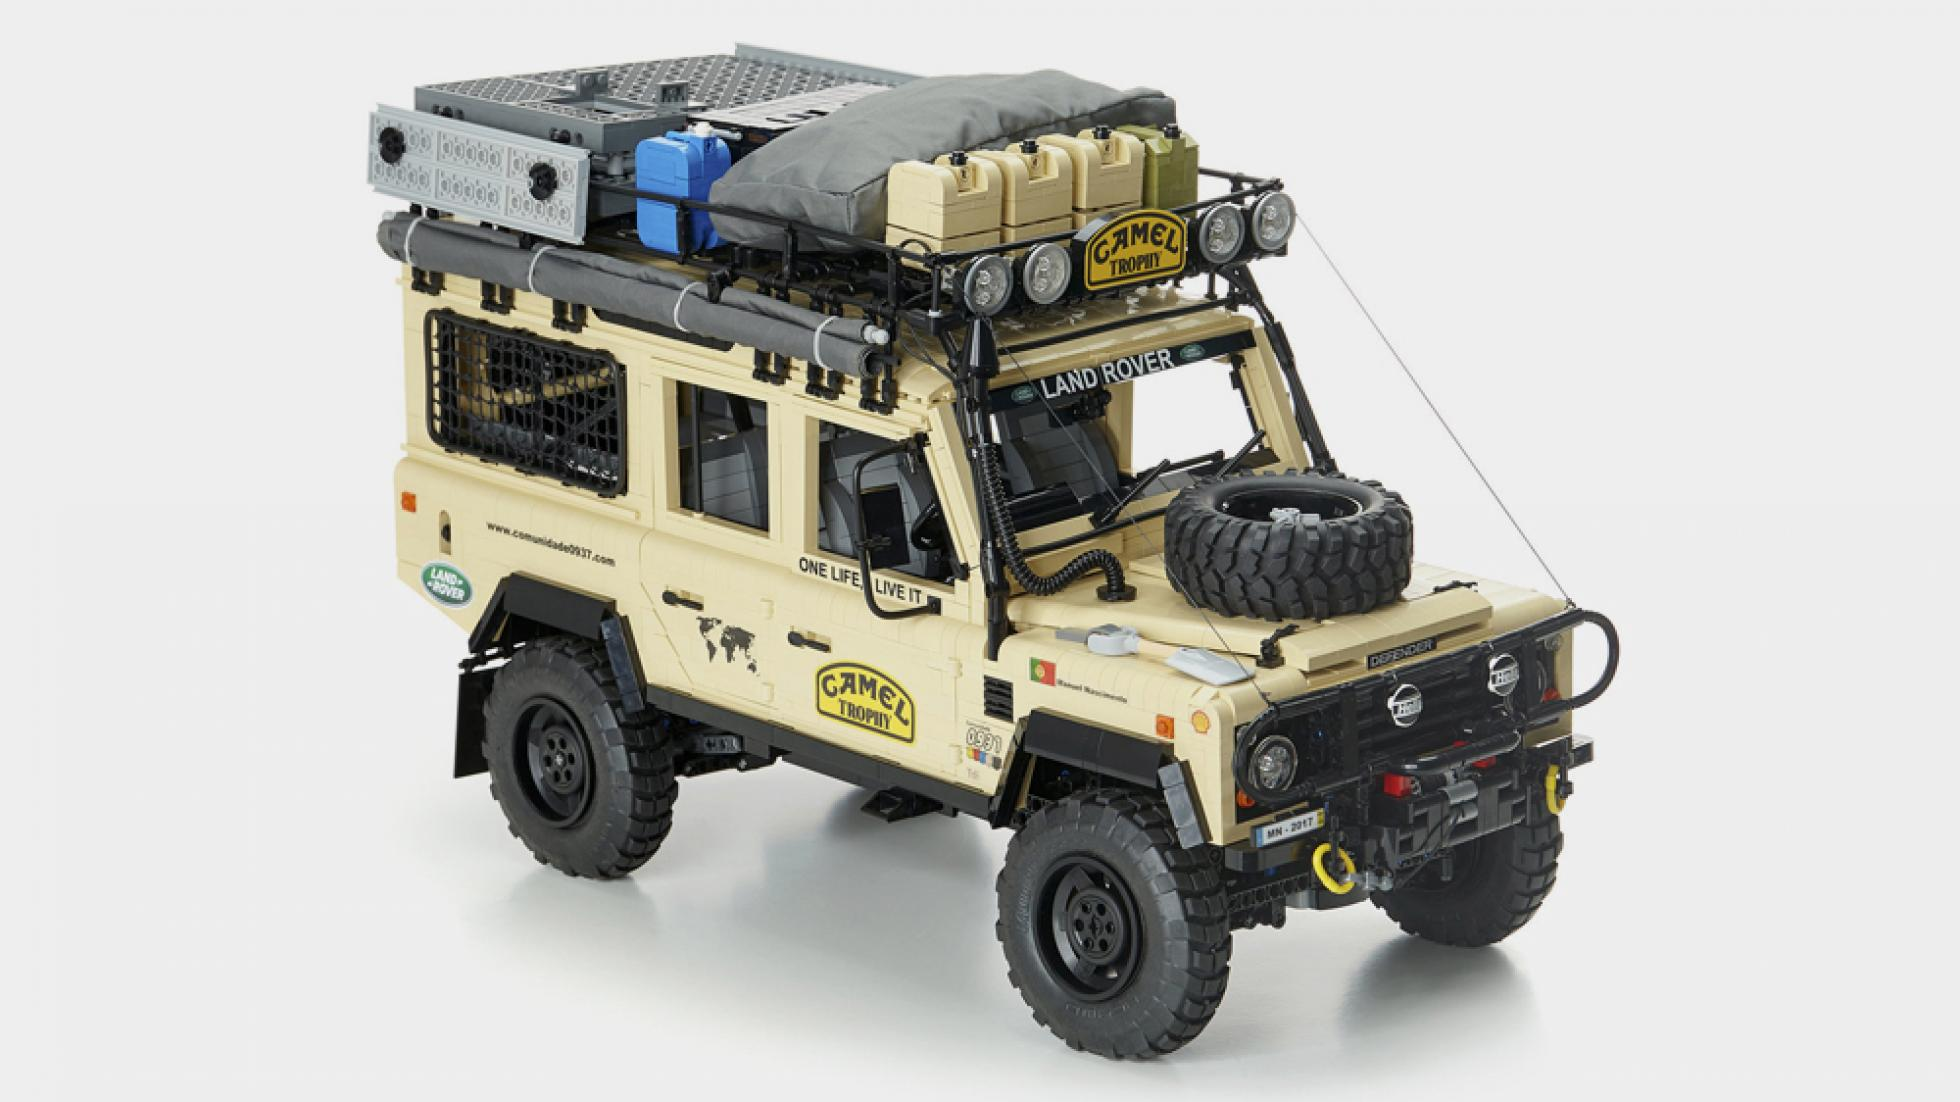 The Camel Trophy Land Rover Angled Front View